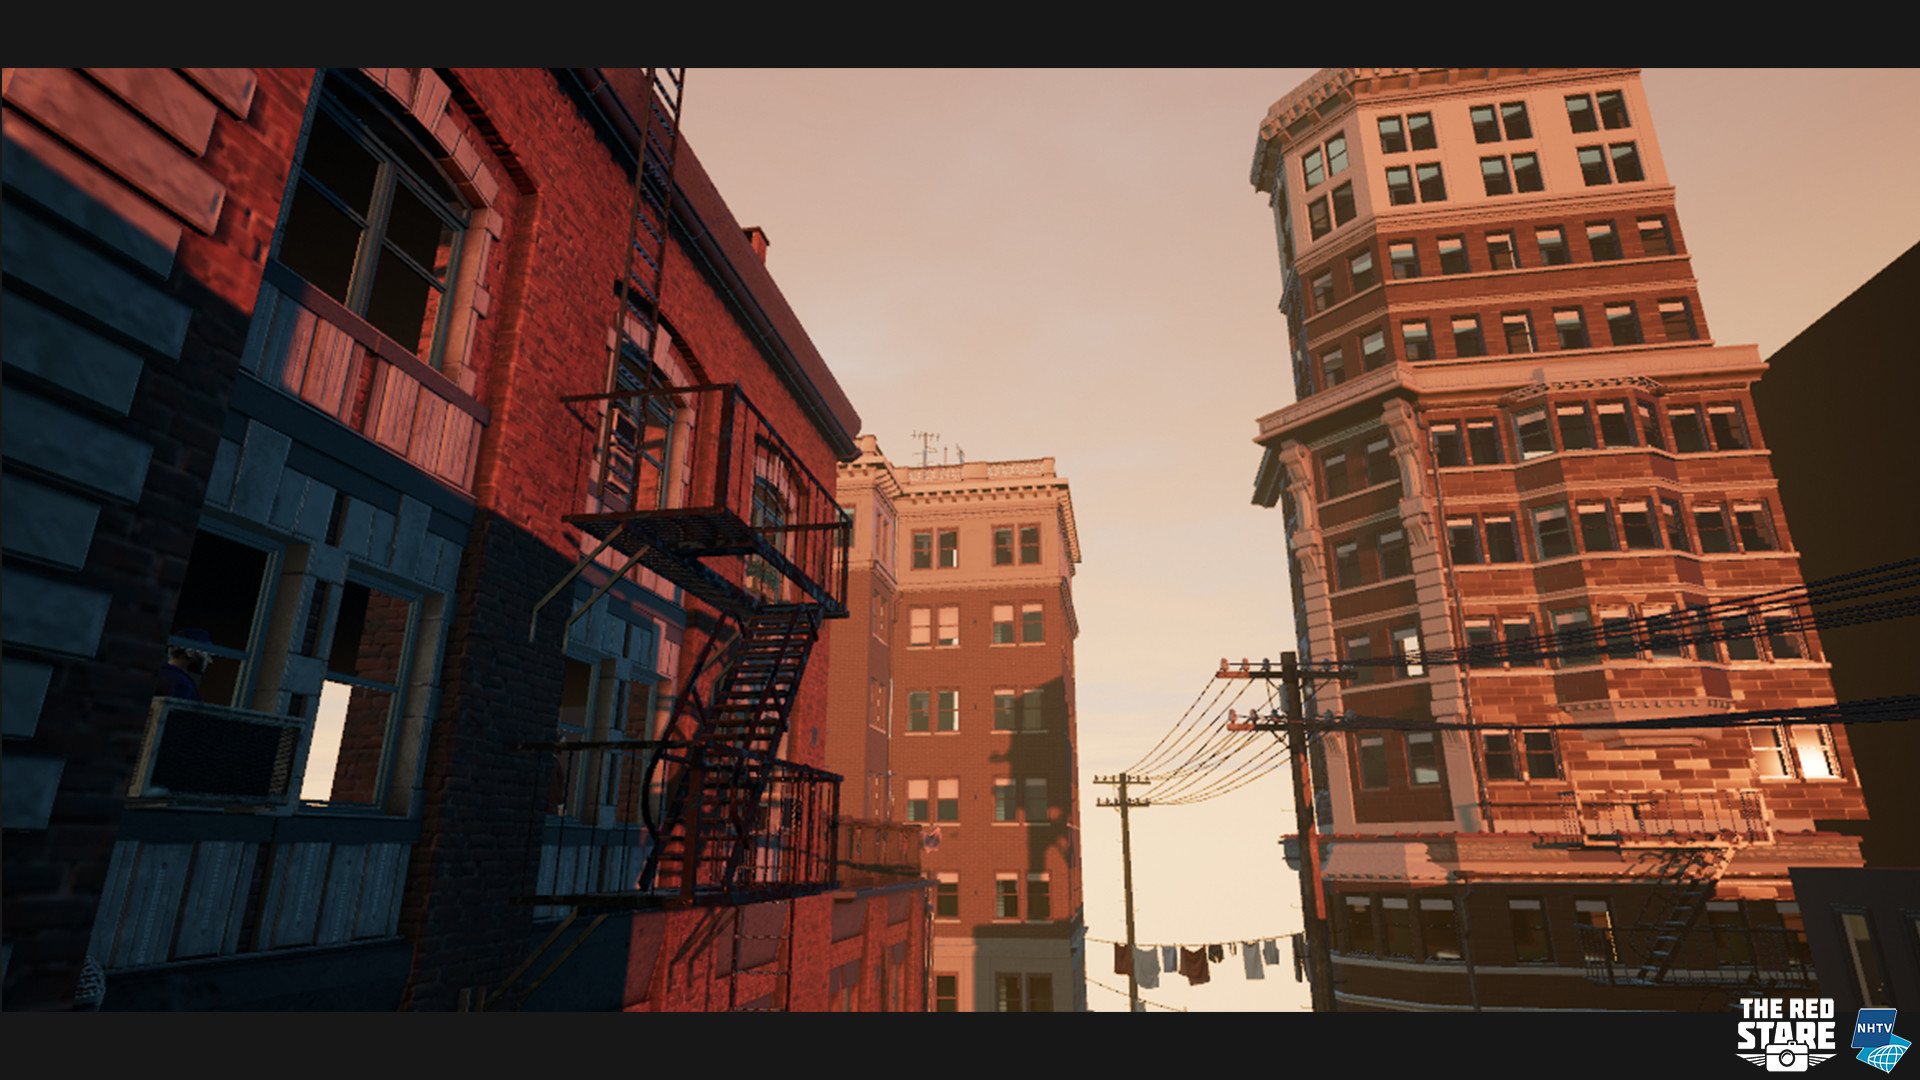 The building together with the rest of the scene, rendered ingame.